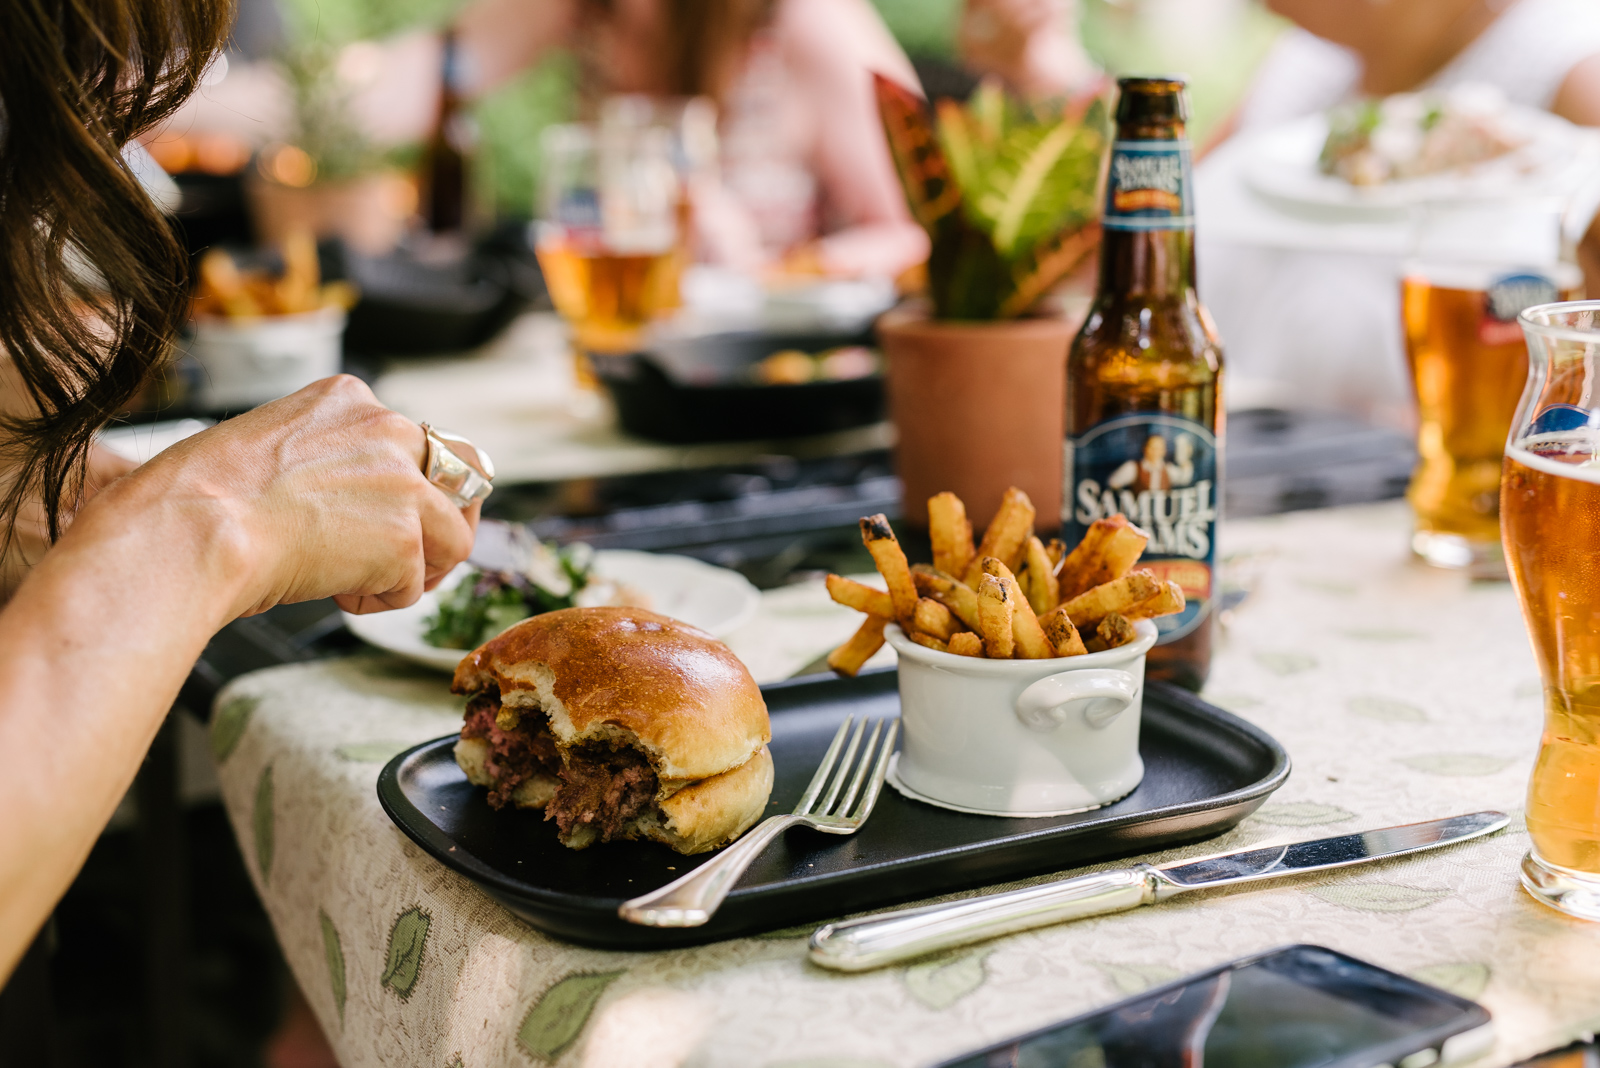 Guests indulging in the burger, beer and fries